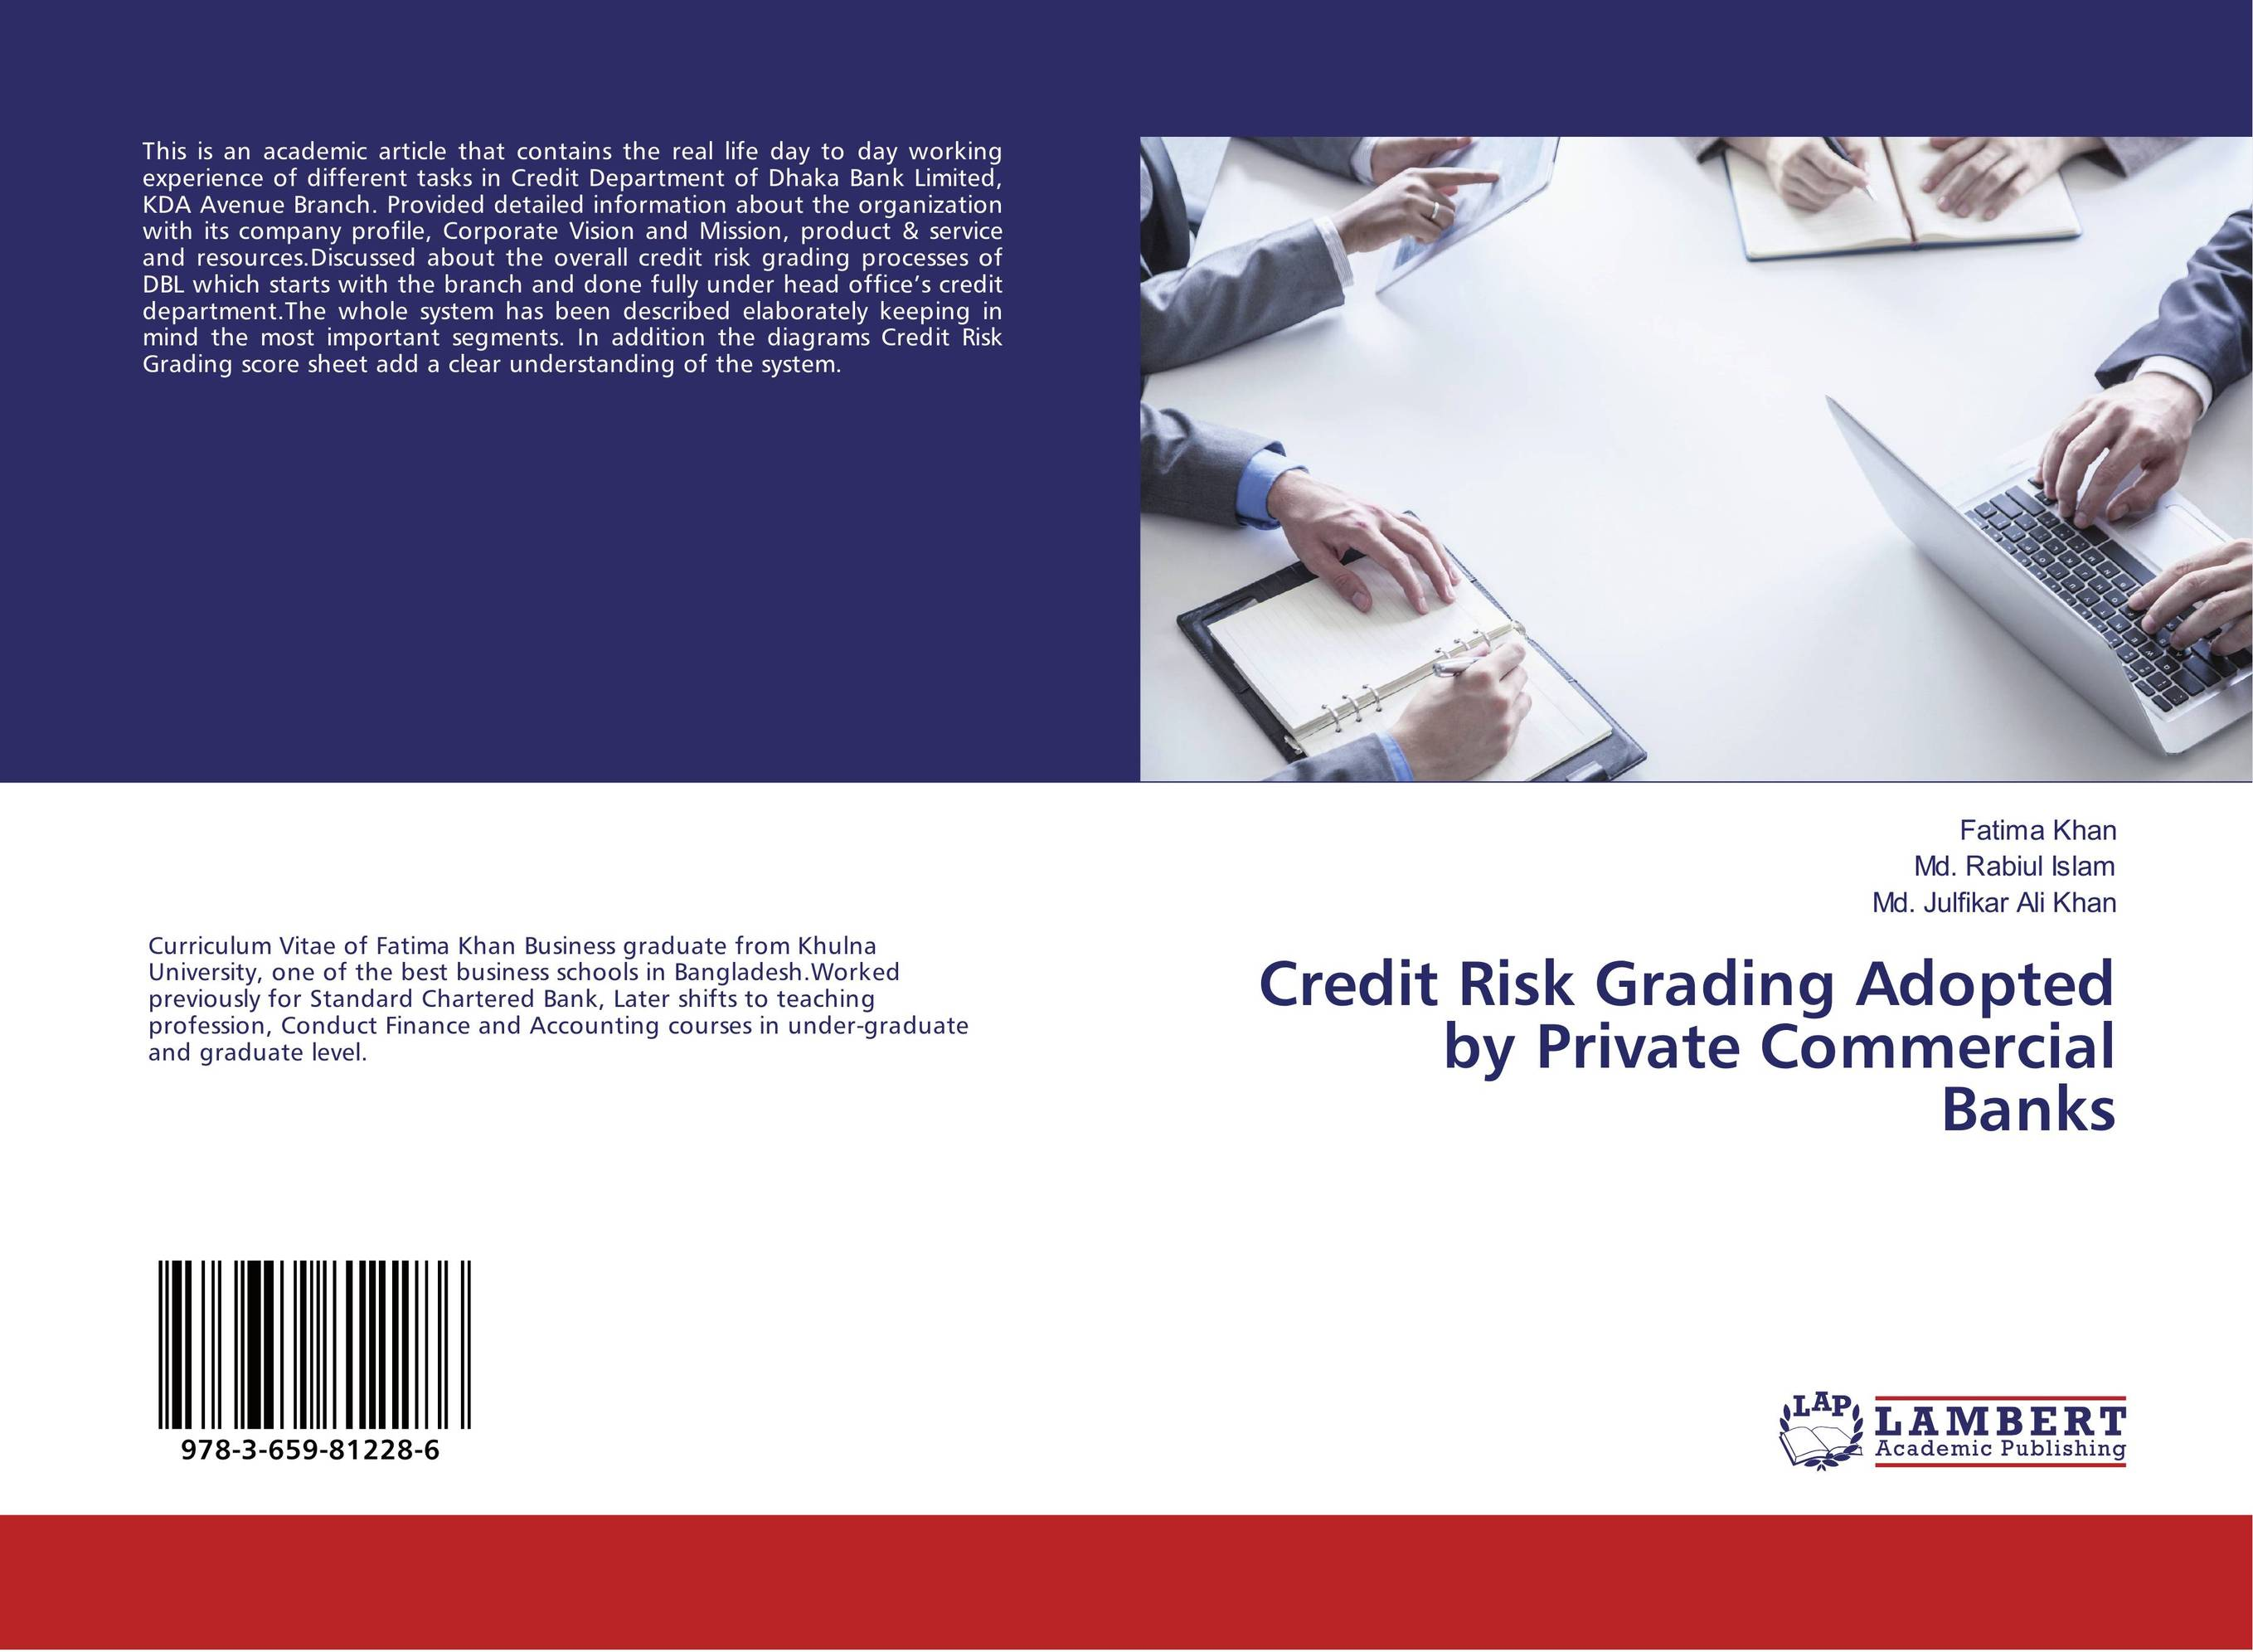 Credit Risk Grading Adopted by Private Commercial Banks sylvain bouteille the handbook of credit risk management originating assessing and managing credit exposures